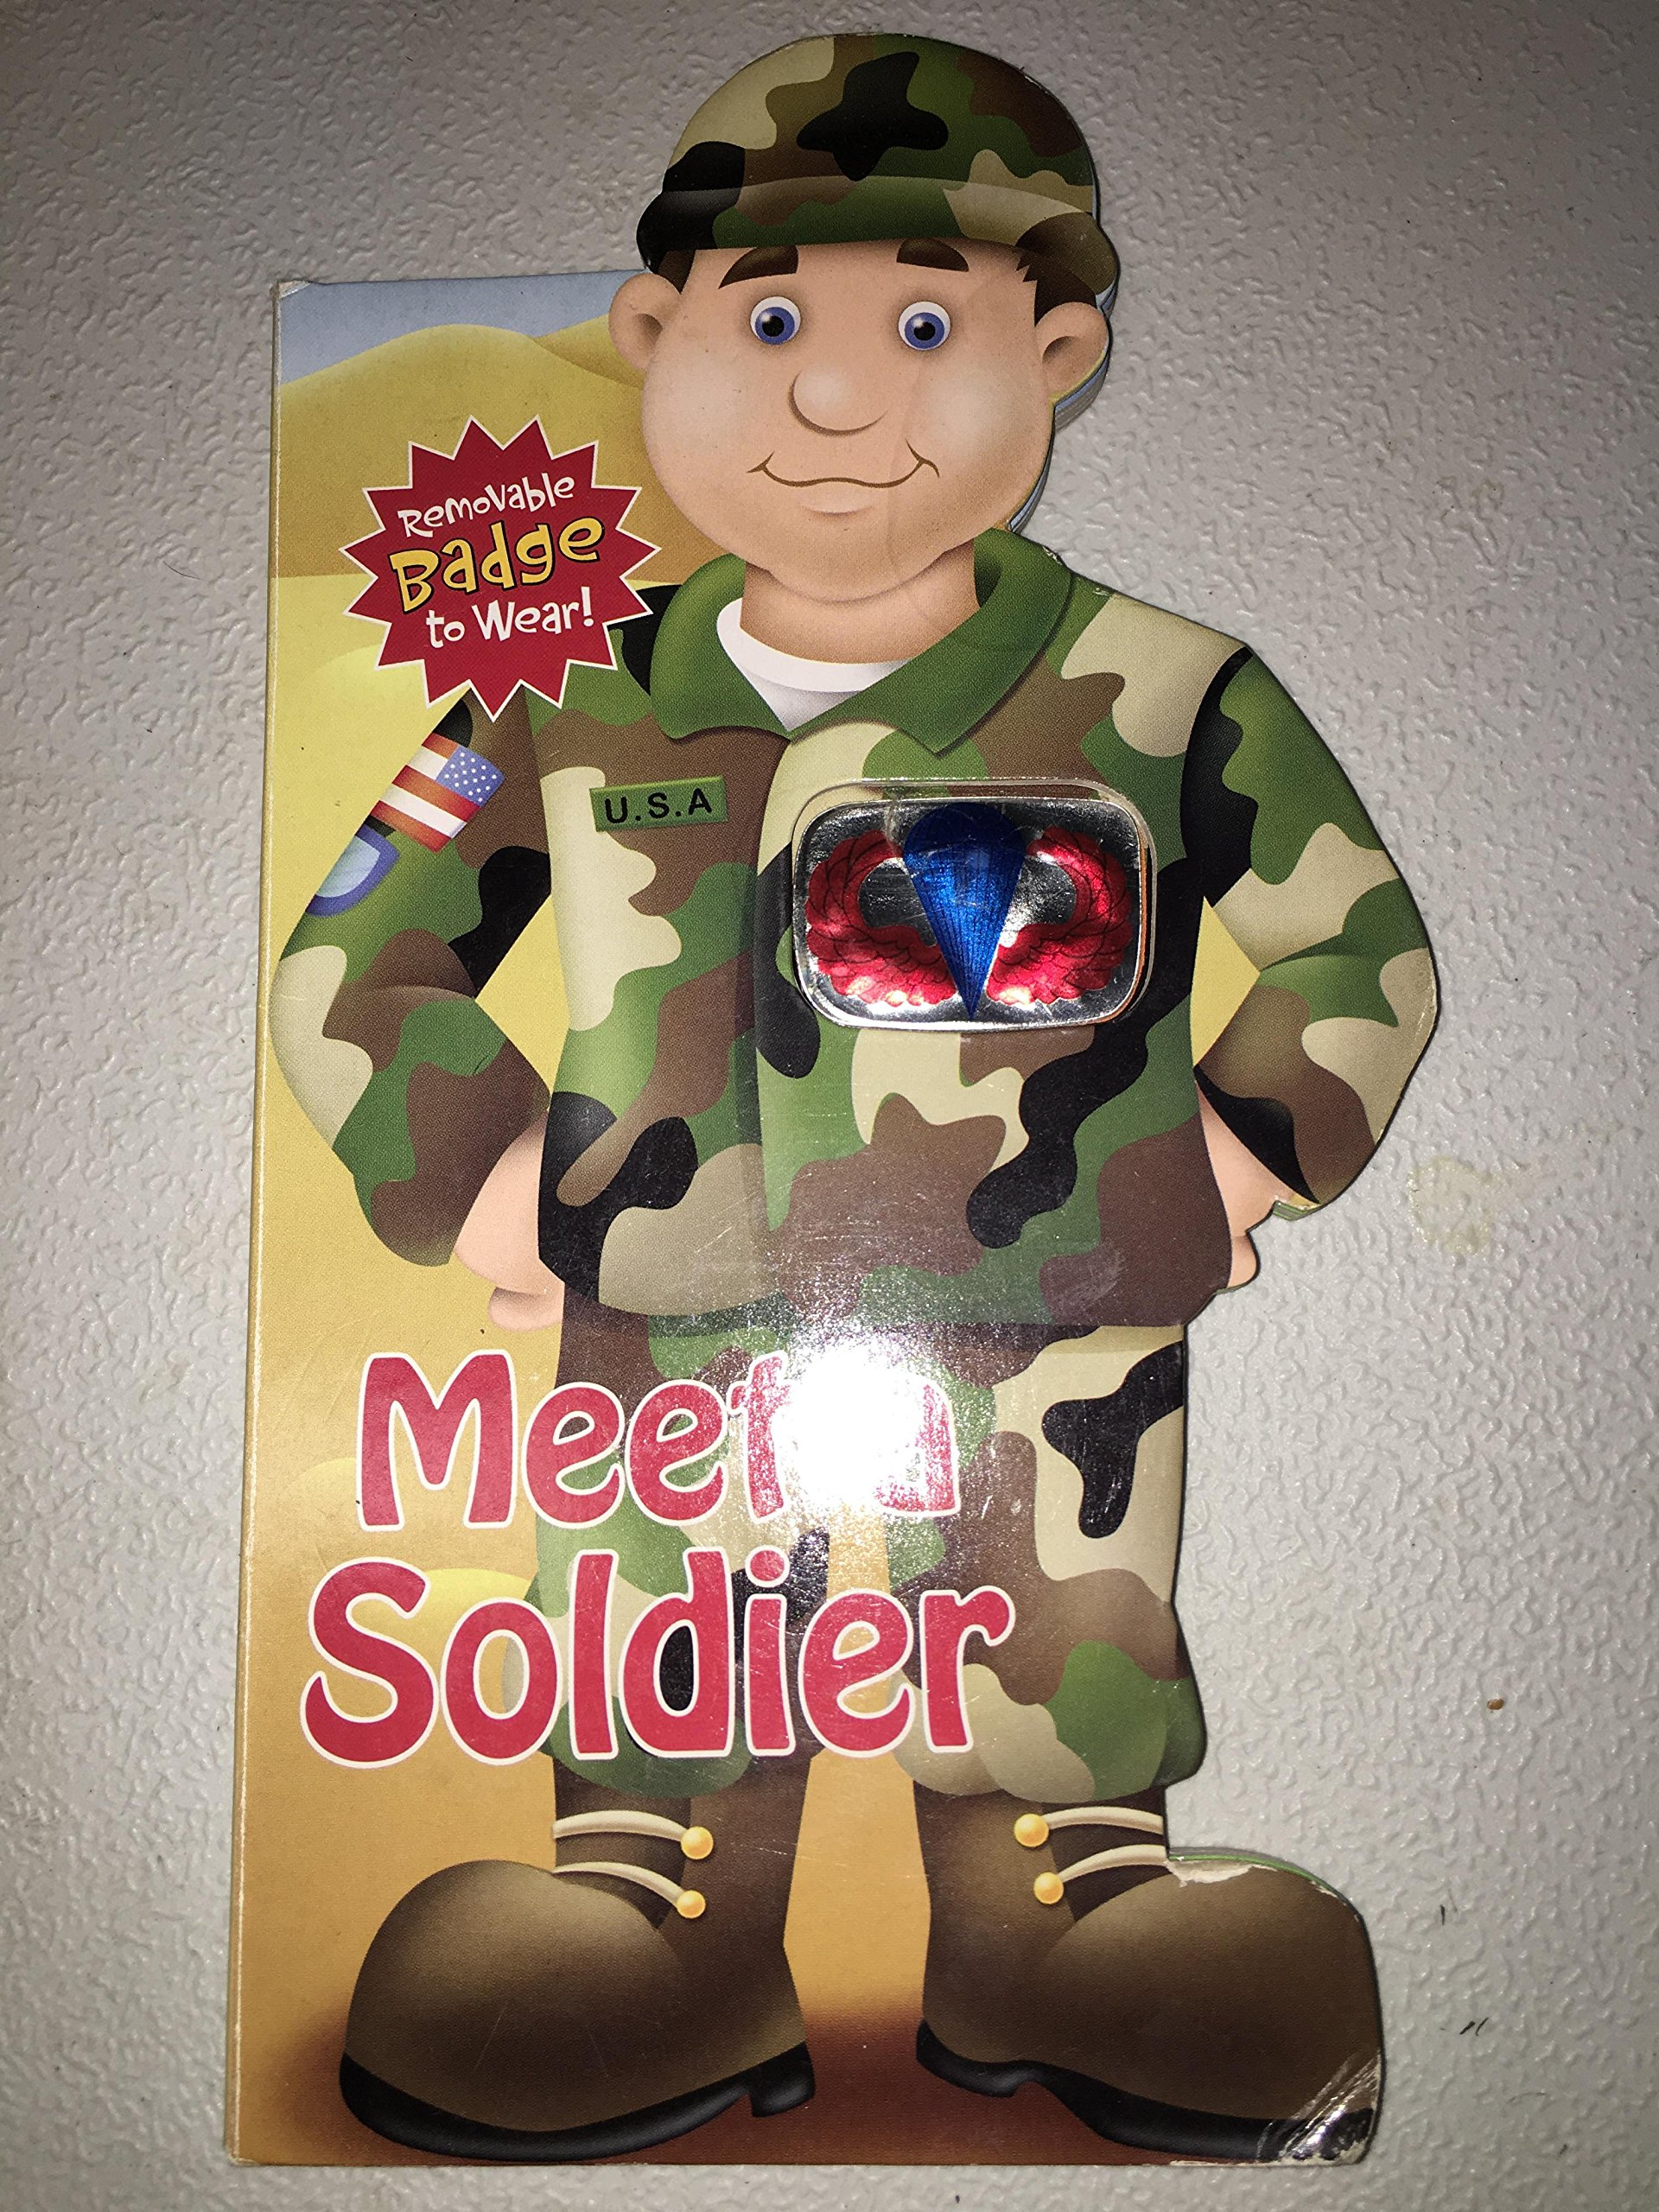 How to meet a soldier